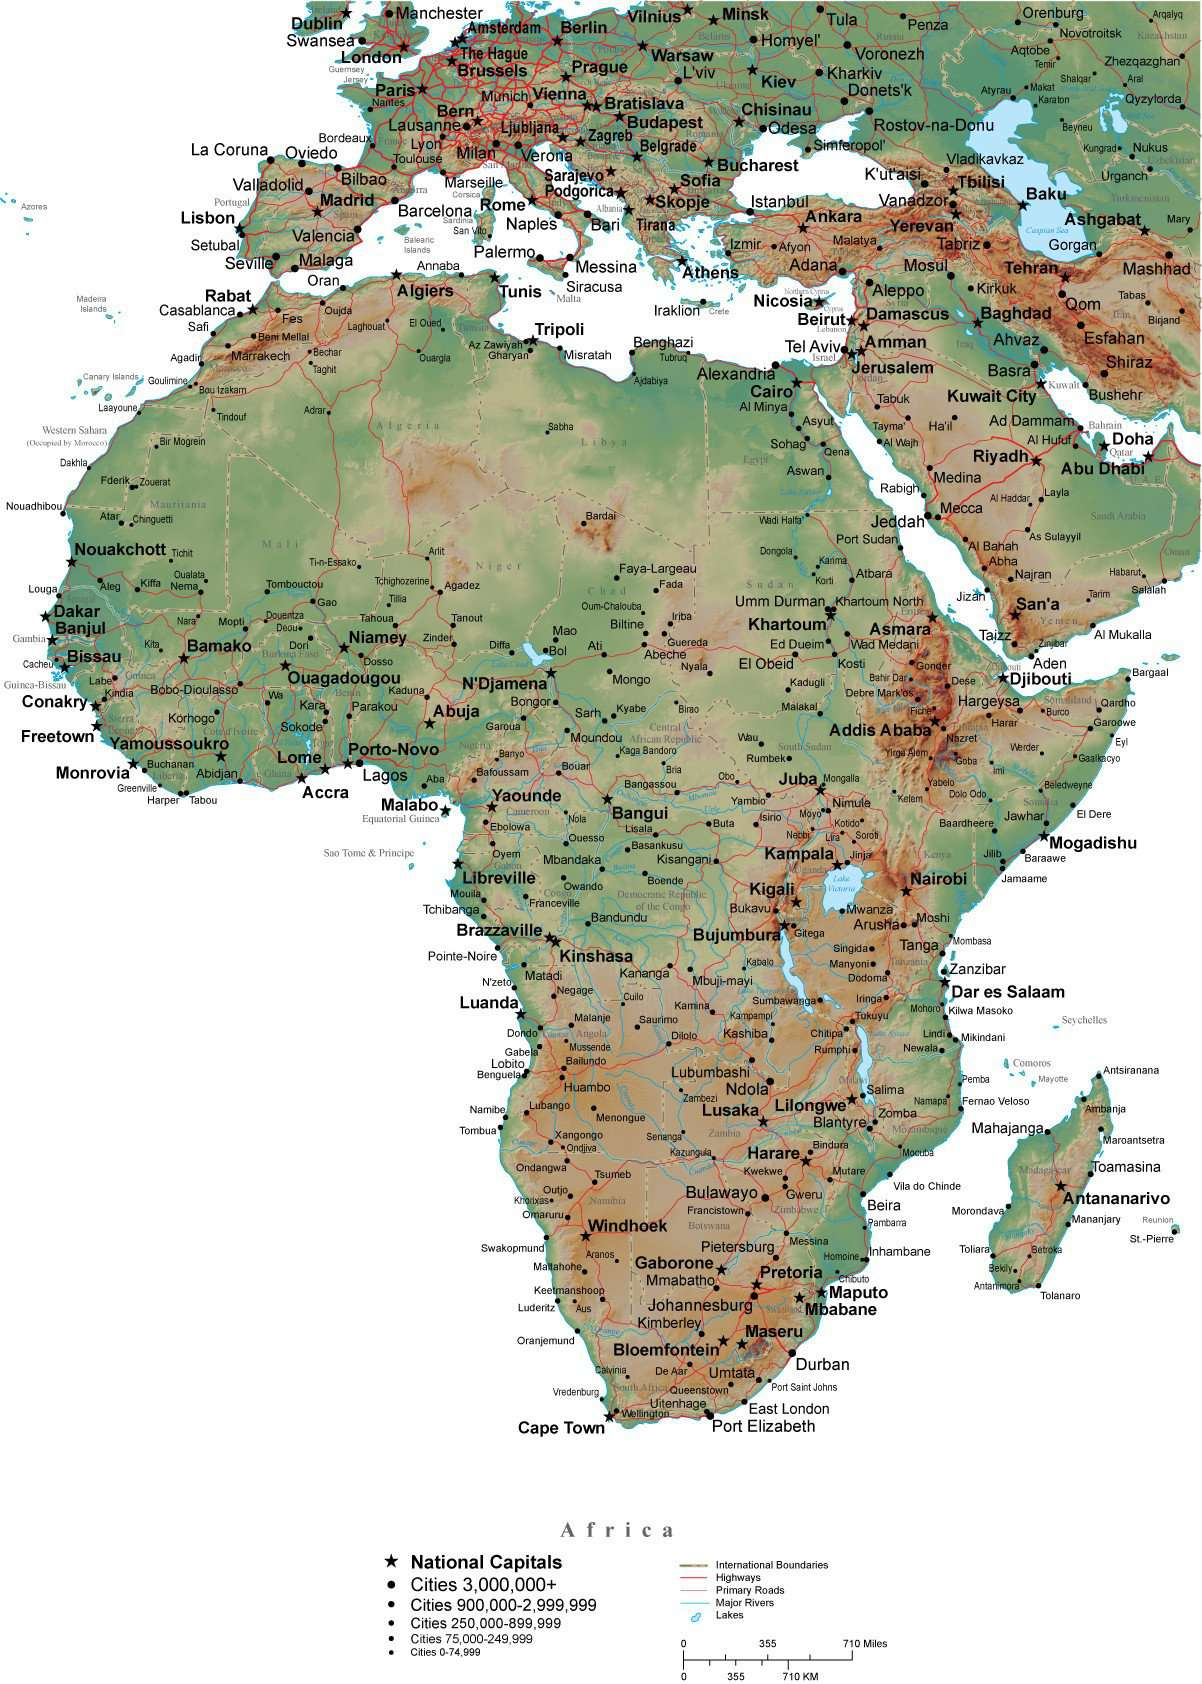 Map Of Africa Land Features.Africa Terrain Map In Adobe Illustrator Vector Format With Photoshop